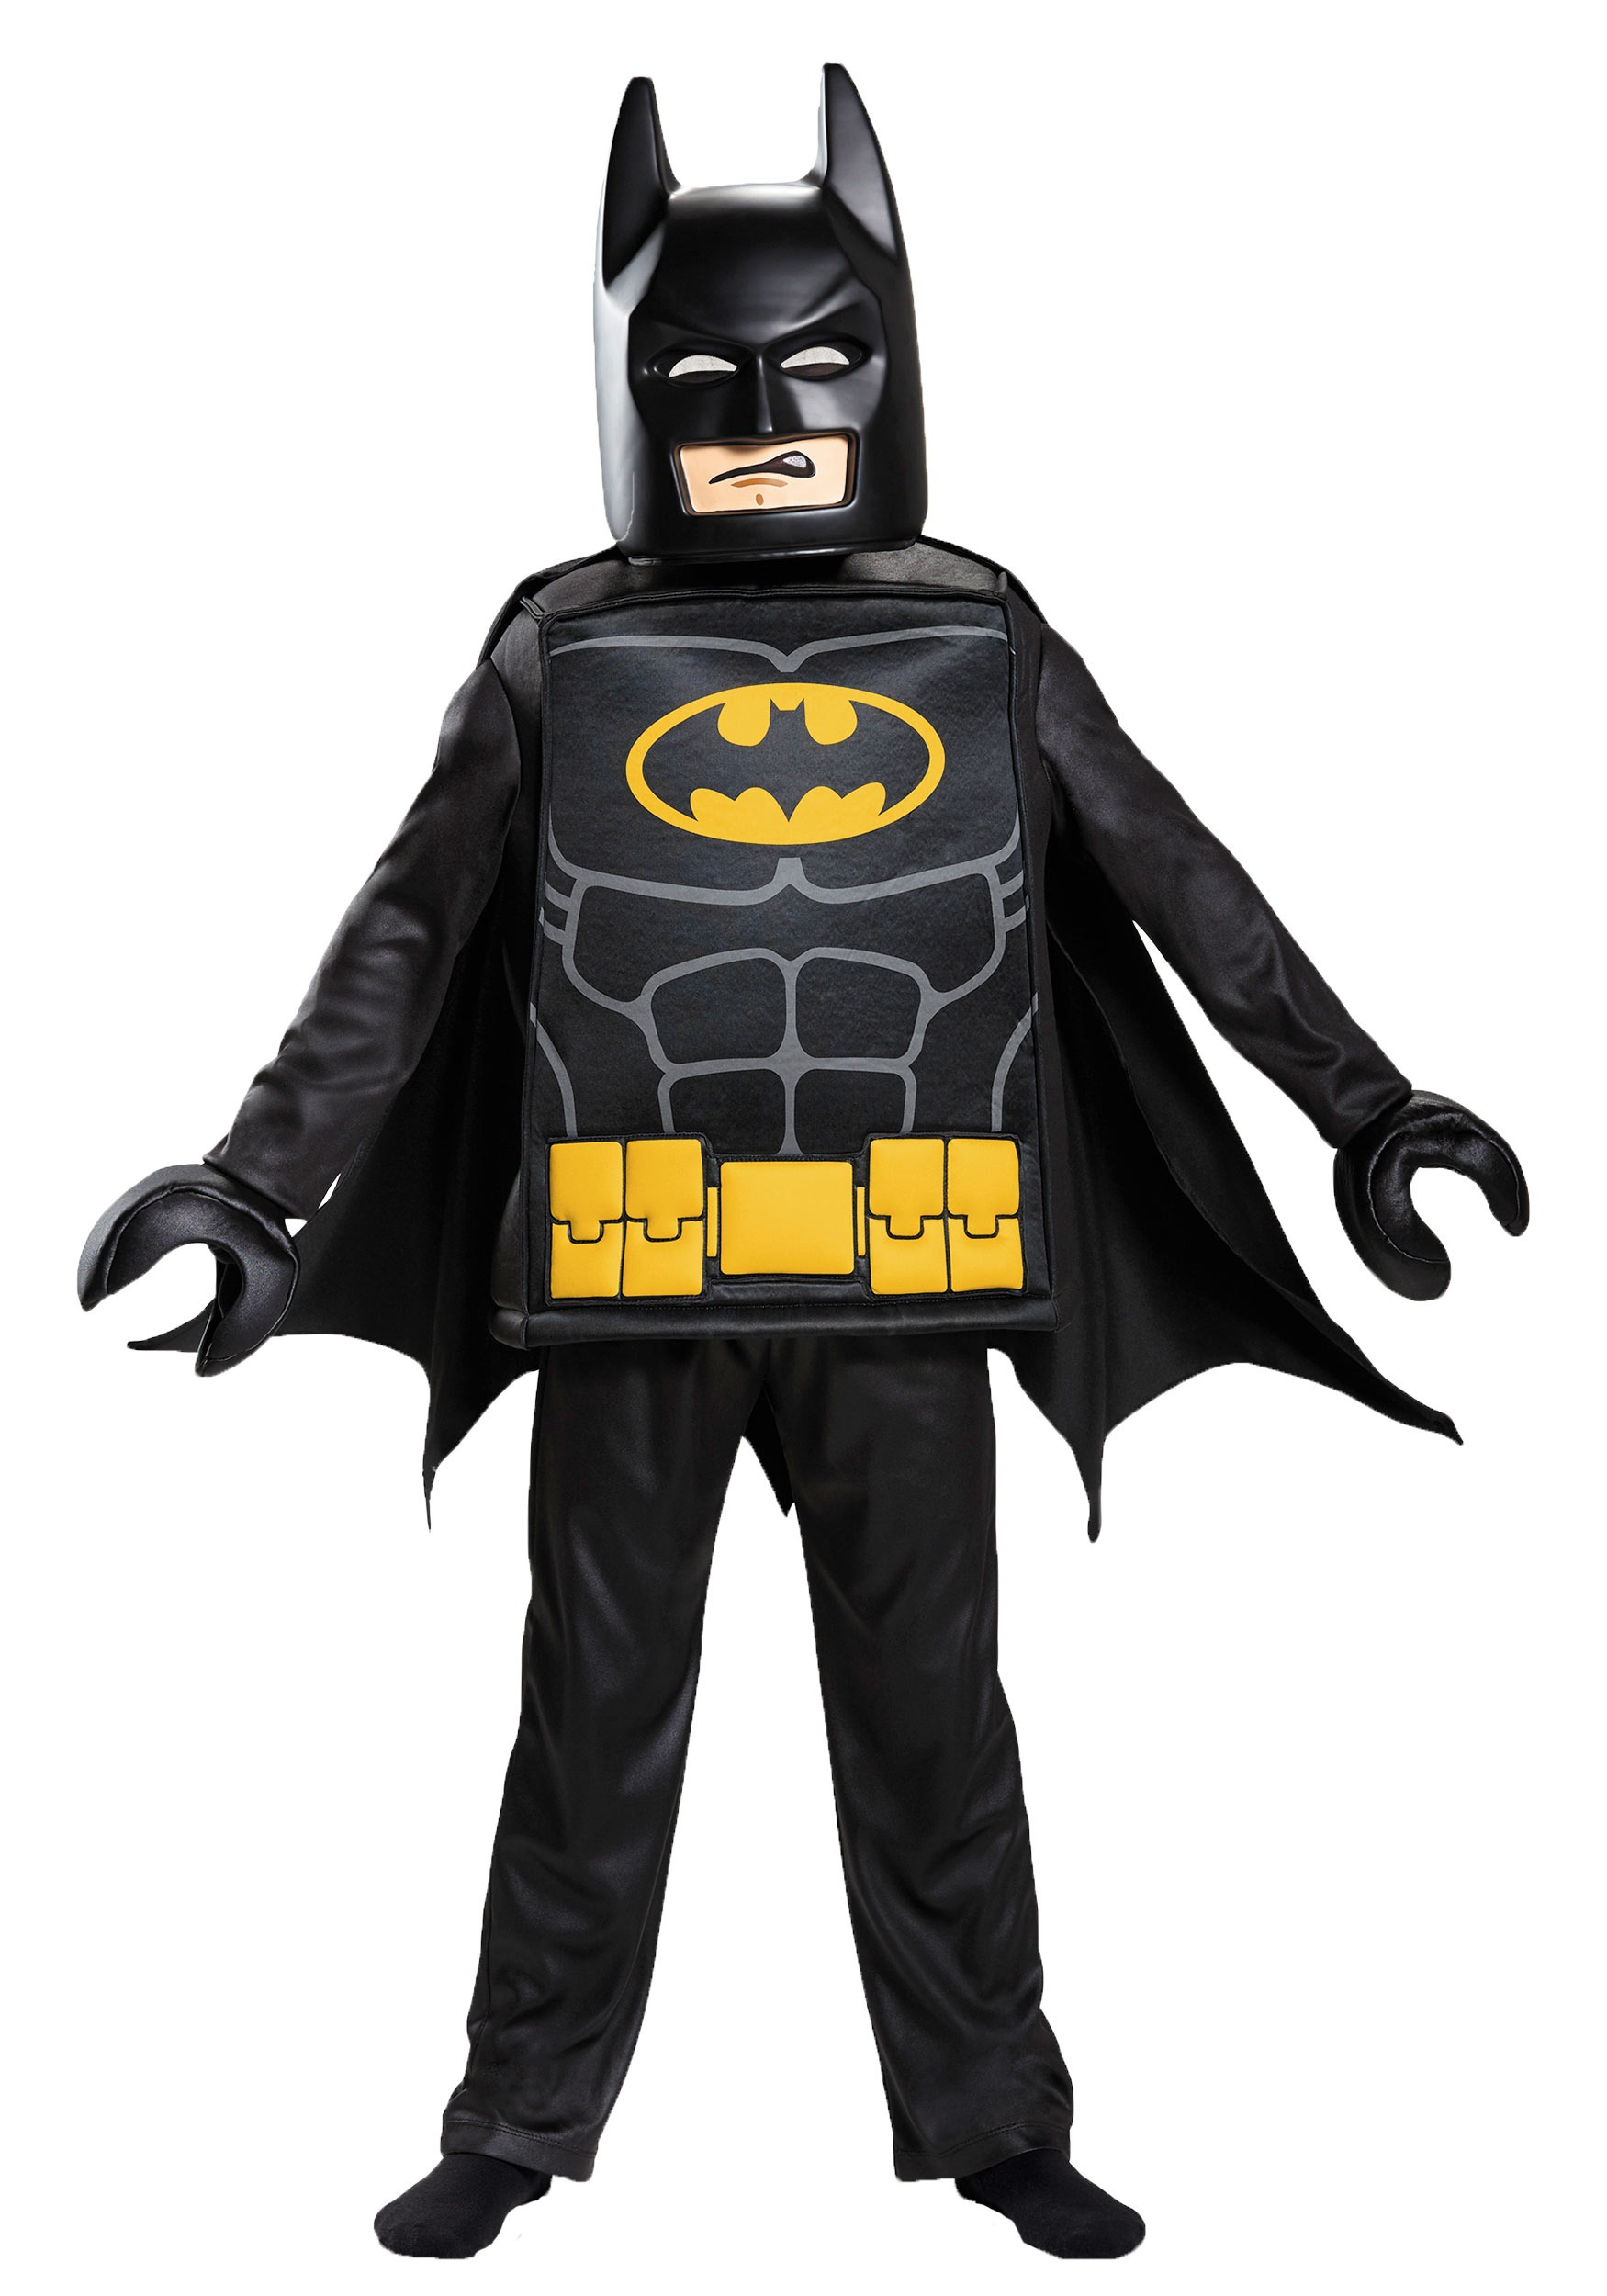 Boys Lego Batman Movie Batman Costume  sc 1 st  Halloween Costumes & Lego Batman Movie Batman Costume for Kids